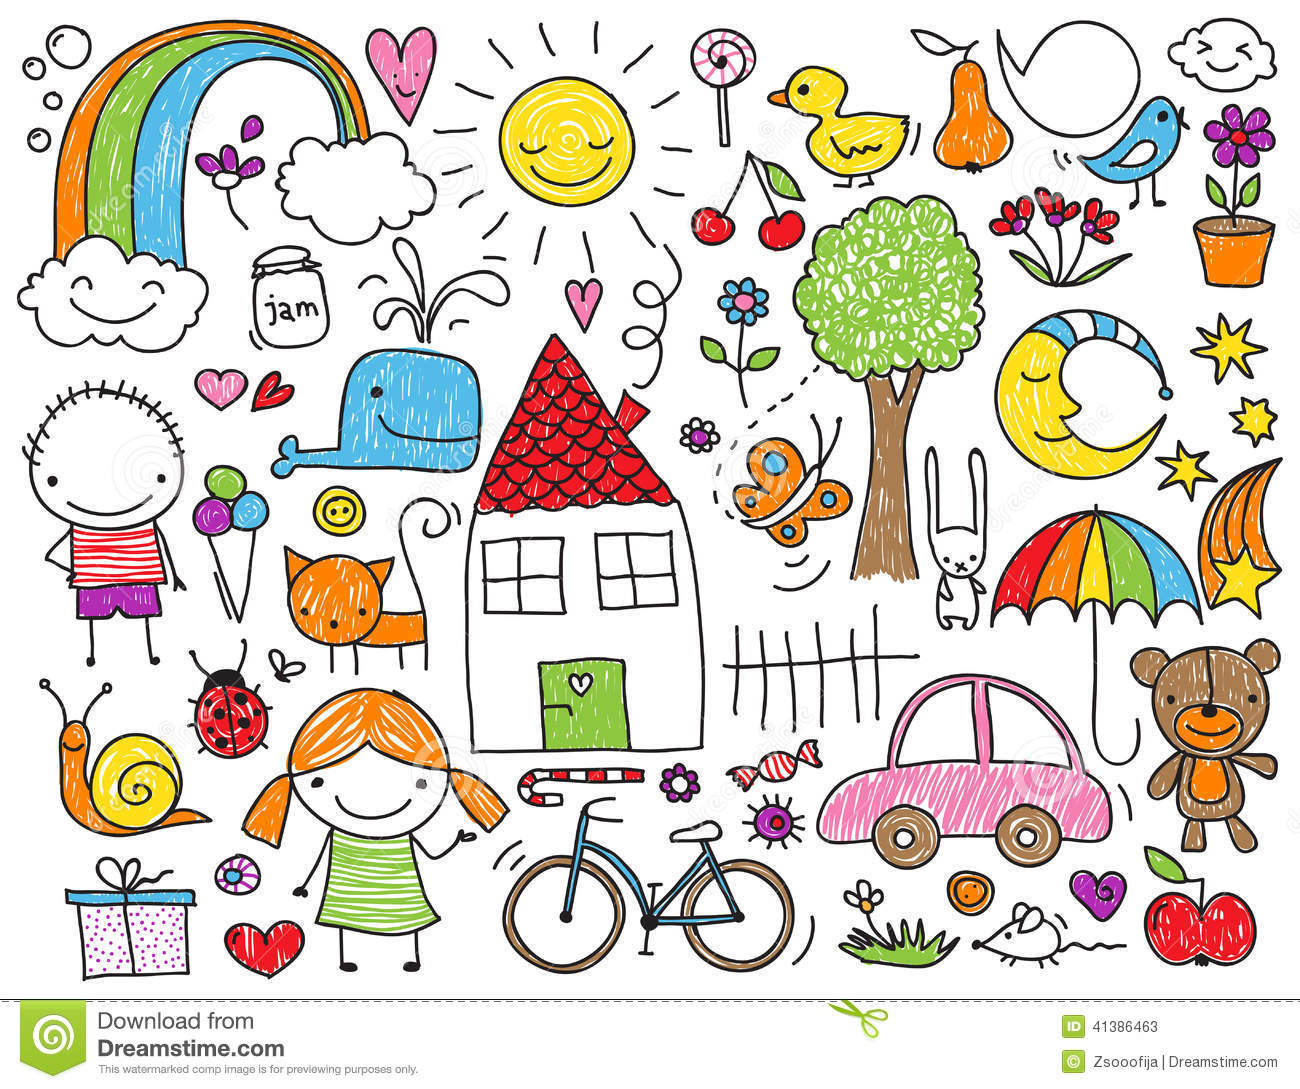 Children S Scribble Drawing : Children s doodle stock illustration image